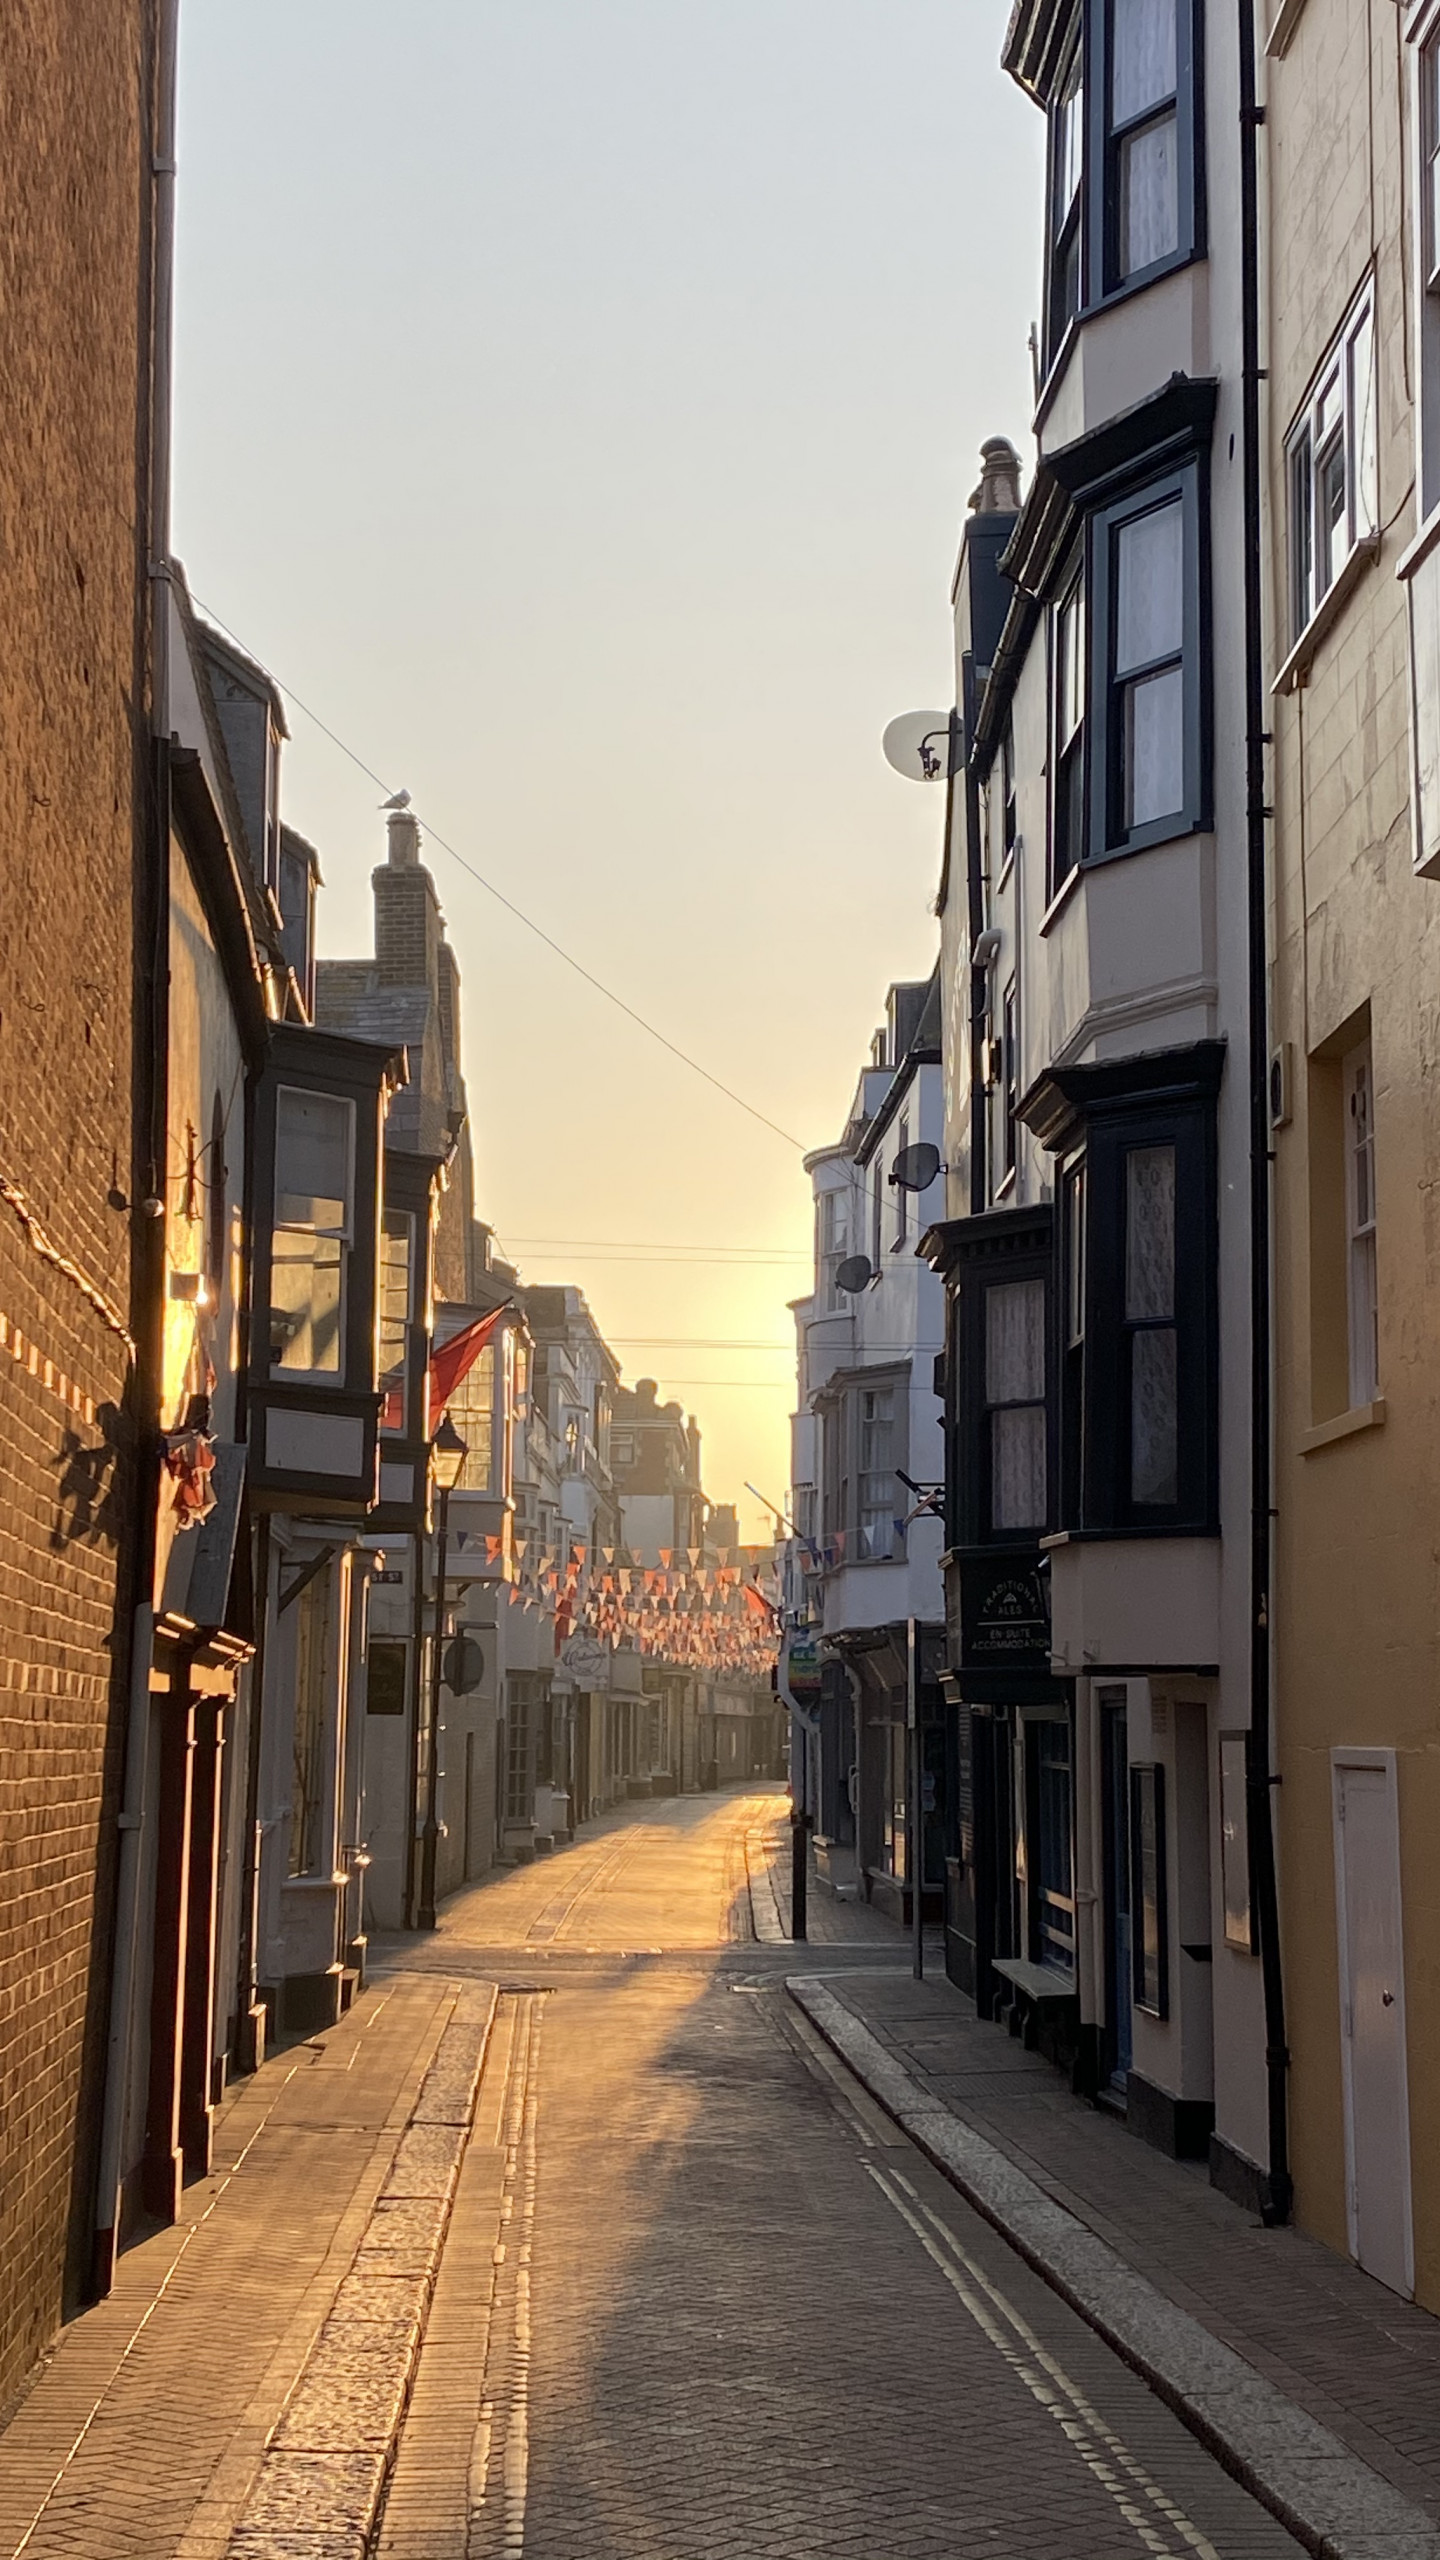 Taken in Weymouth, a seaside lovely town which has gorgeous beach and coastline.  © Jie Zhou